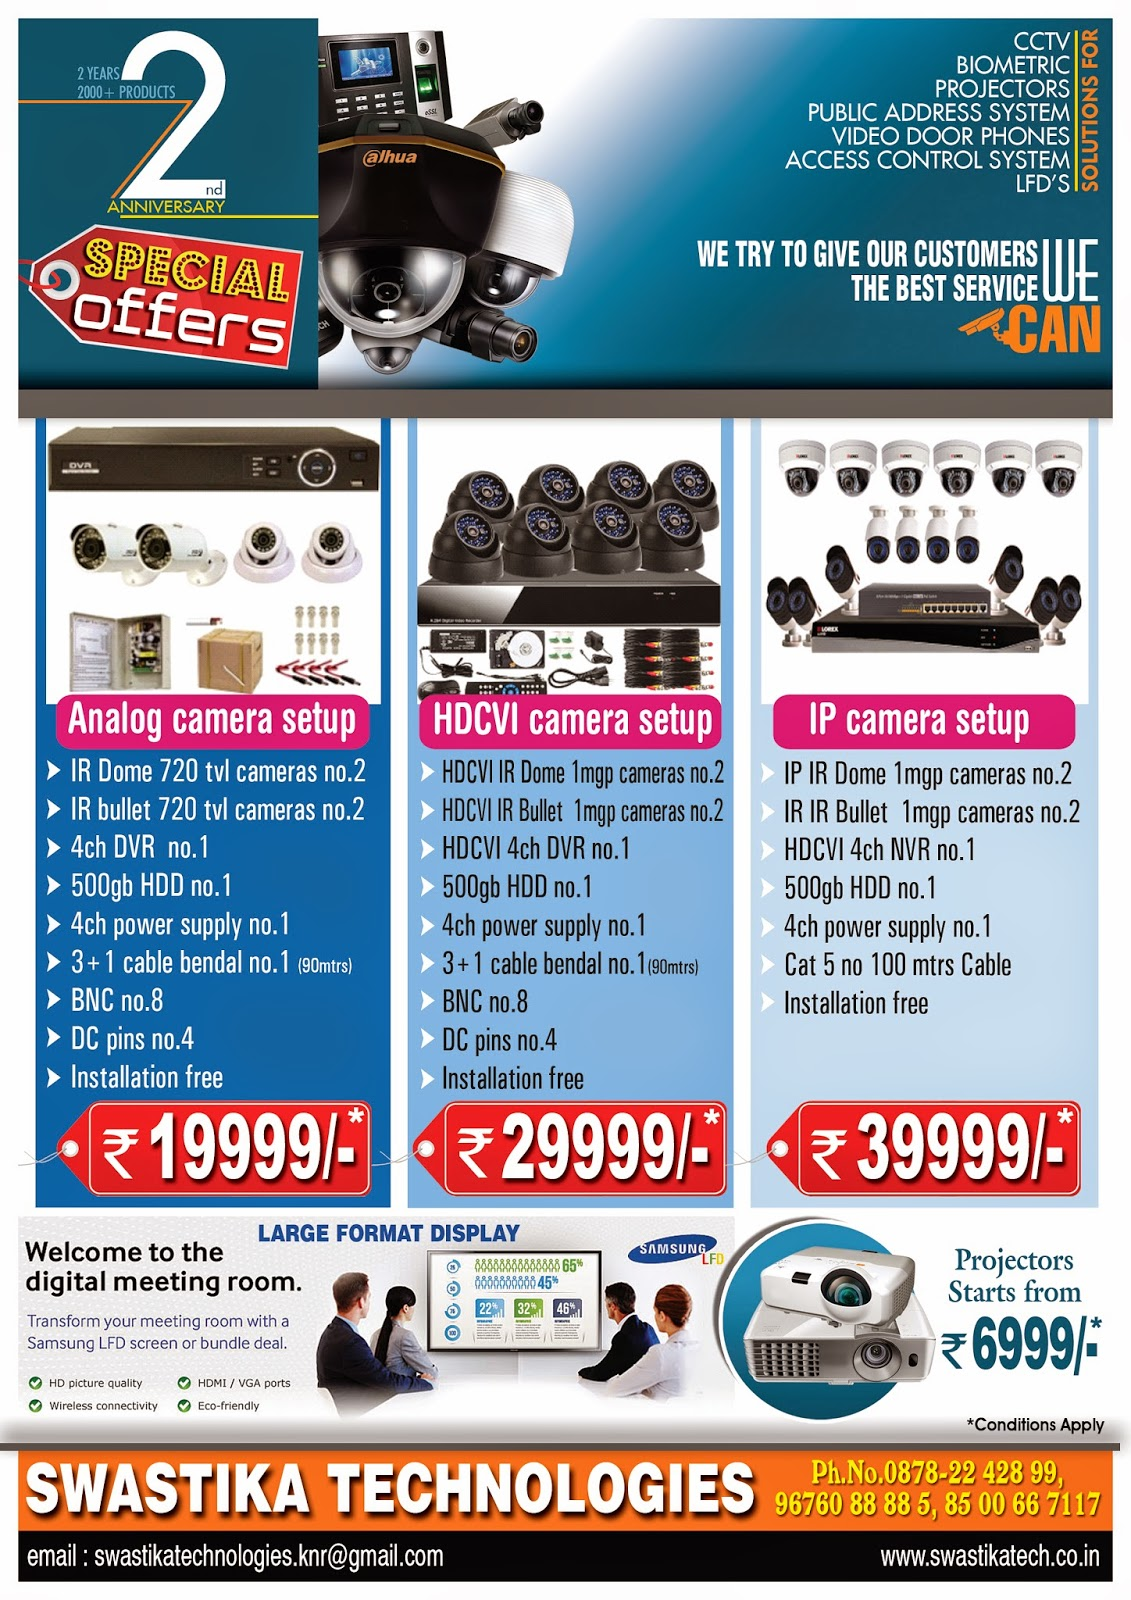 swastika-tech-cctv-security-systems-brochure-design-psd-naveengfx.com